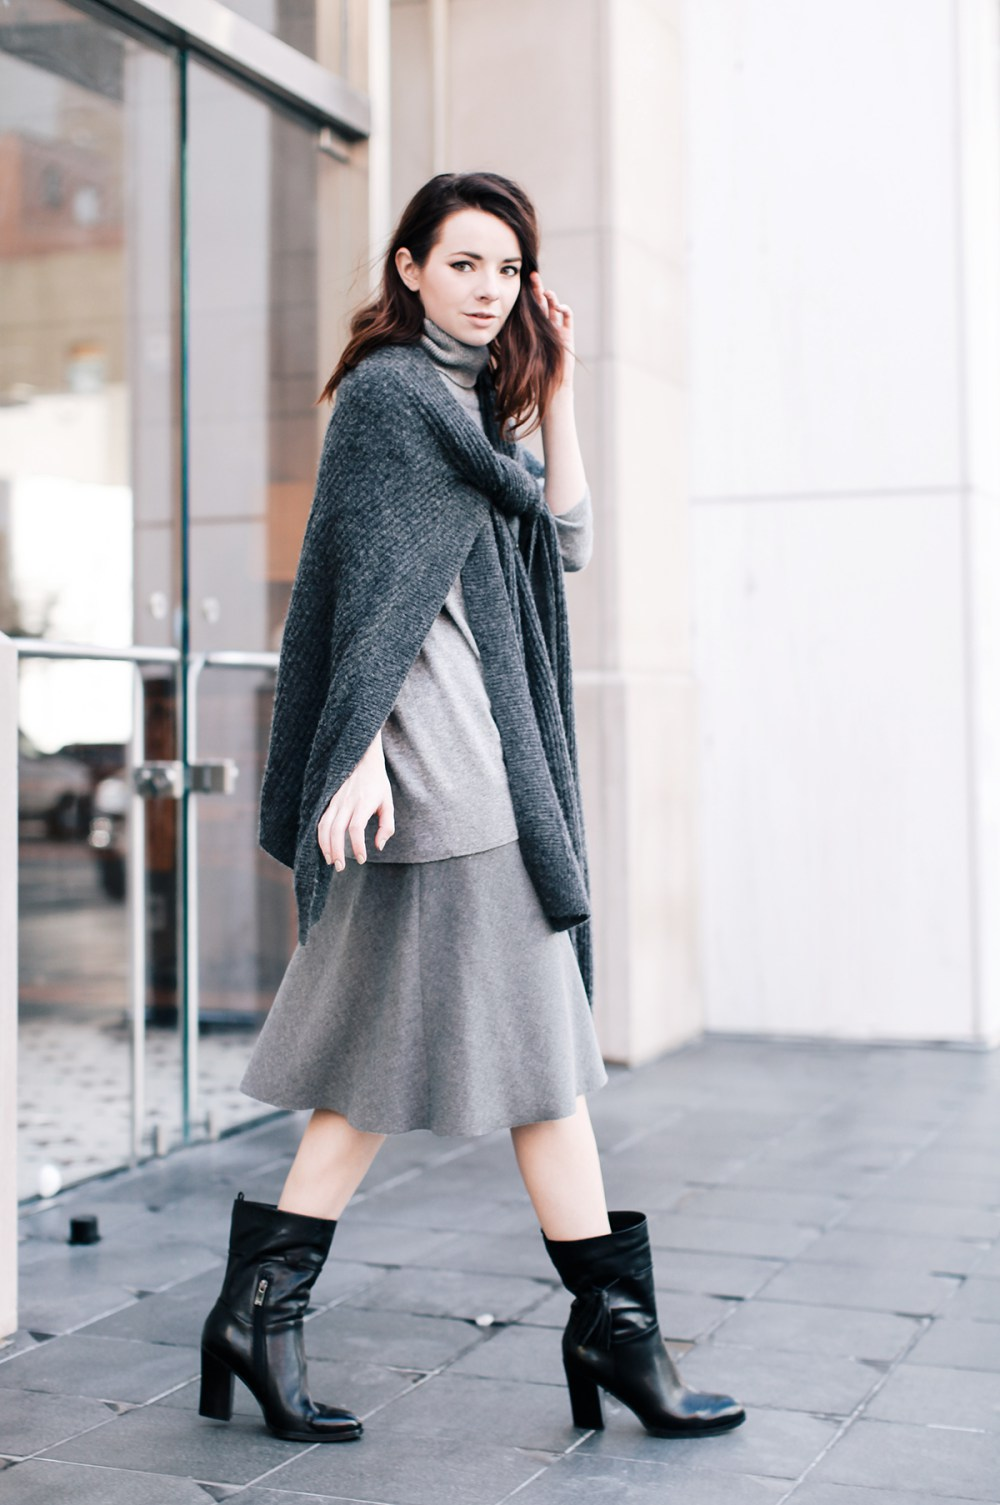 Leather ankle boots help to break up the gray coordinates. (Photo: Sea of Shoes)